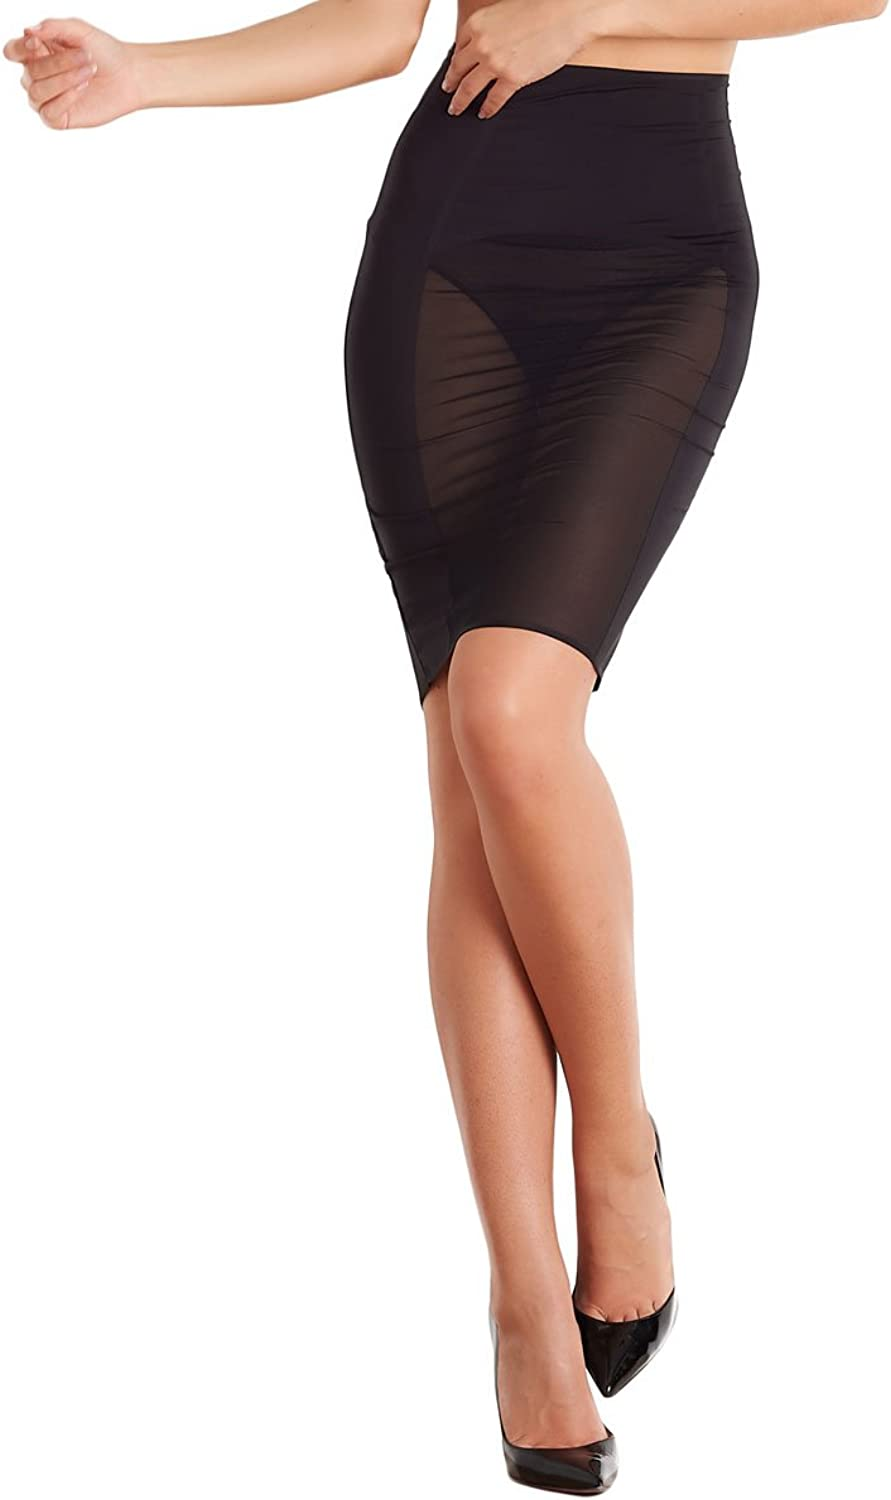 Maison Close 608049 Women's Belle De Jour Black Light Control Skirt